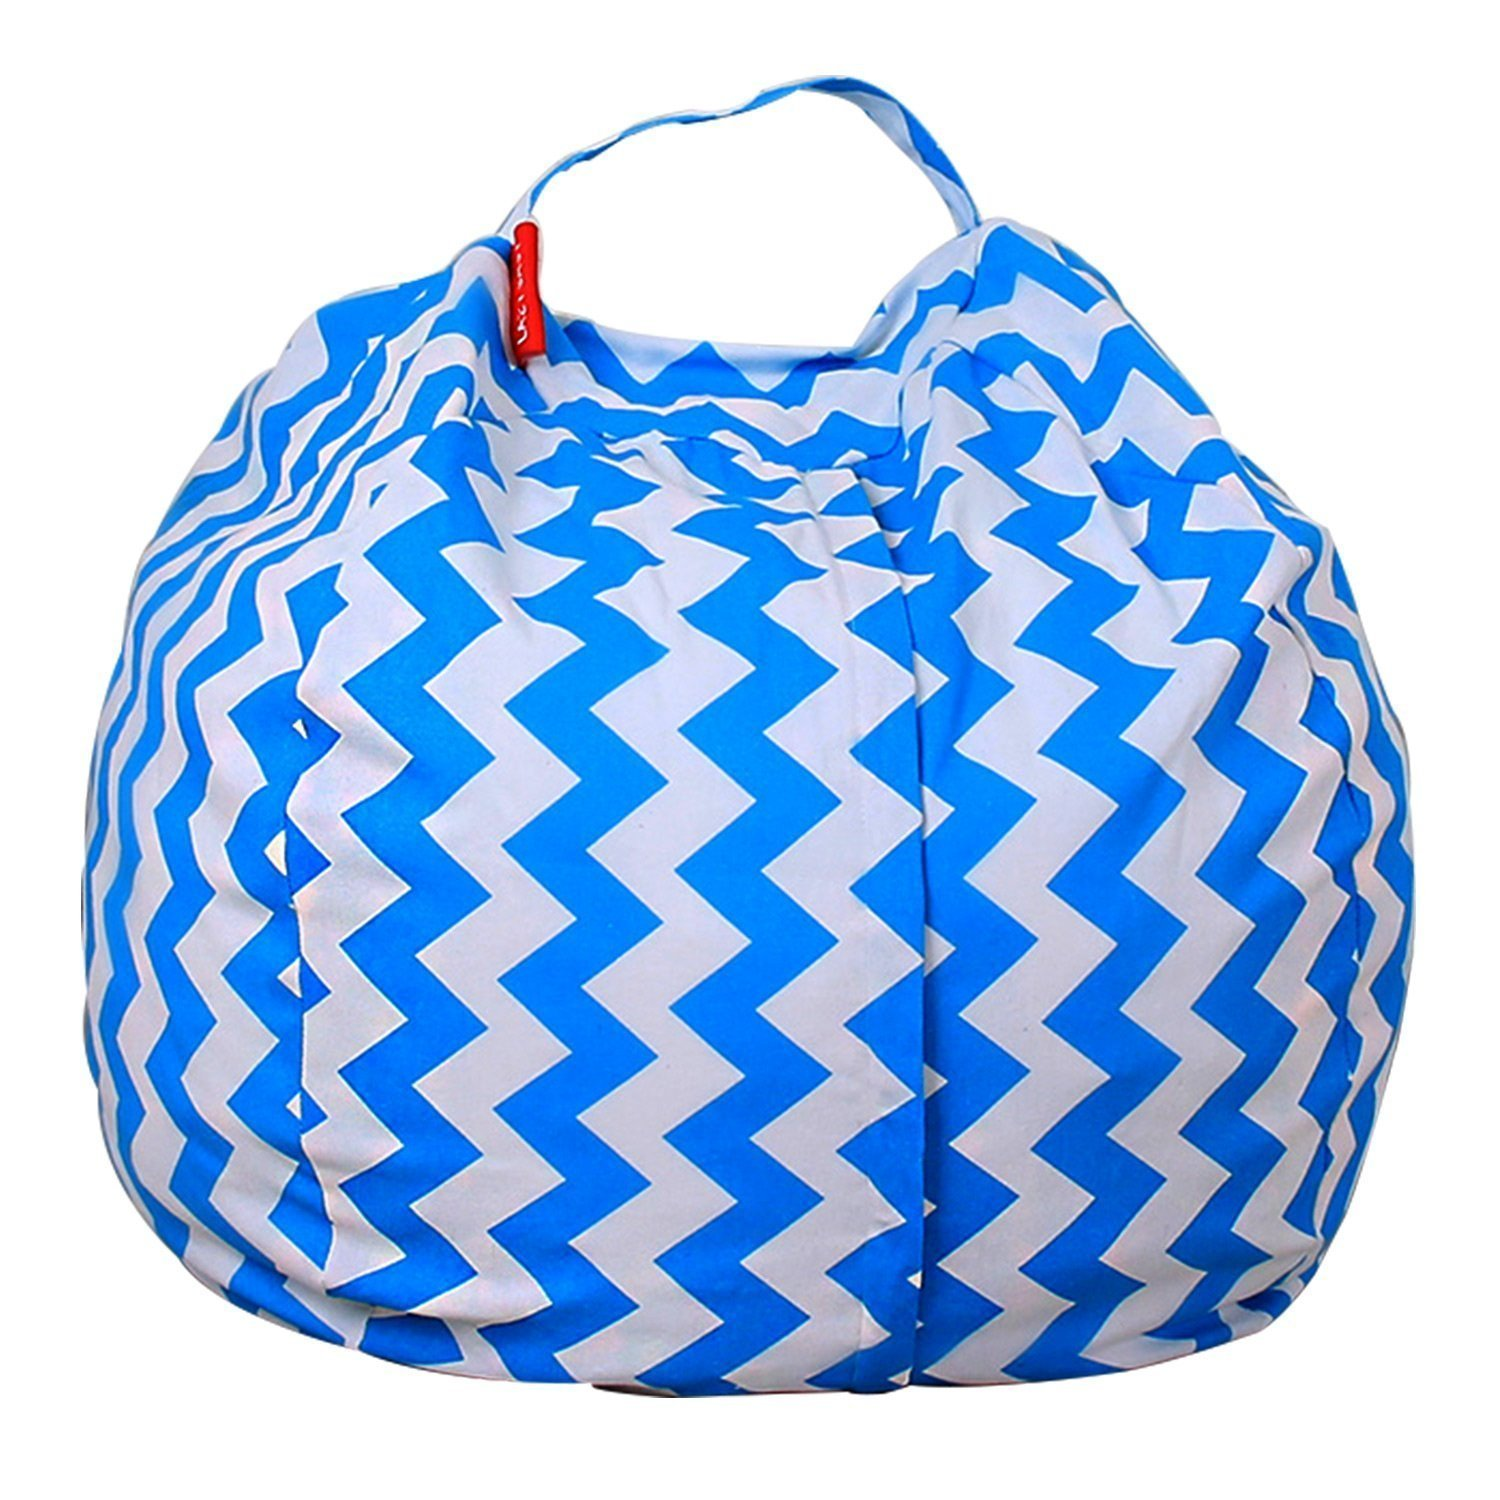 Extra-Large Stuffed Animal Storage Bean Bag Cover - Stuffed Toy Organizer & Perfect Storage Solution. Stuff, Zip, Sit - That's It! (Blue Wave, 38'')